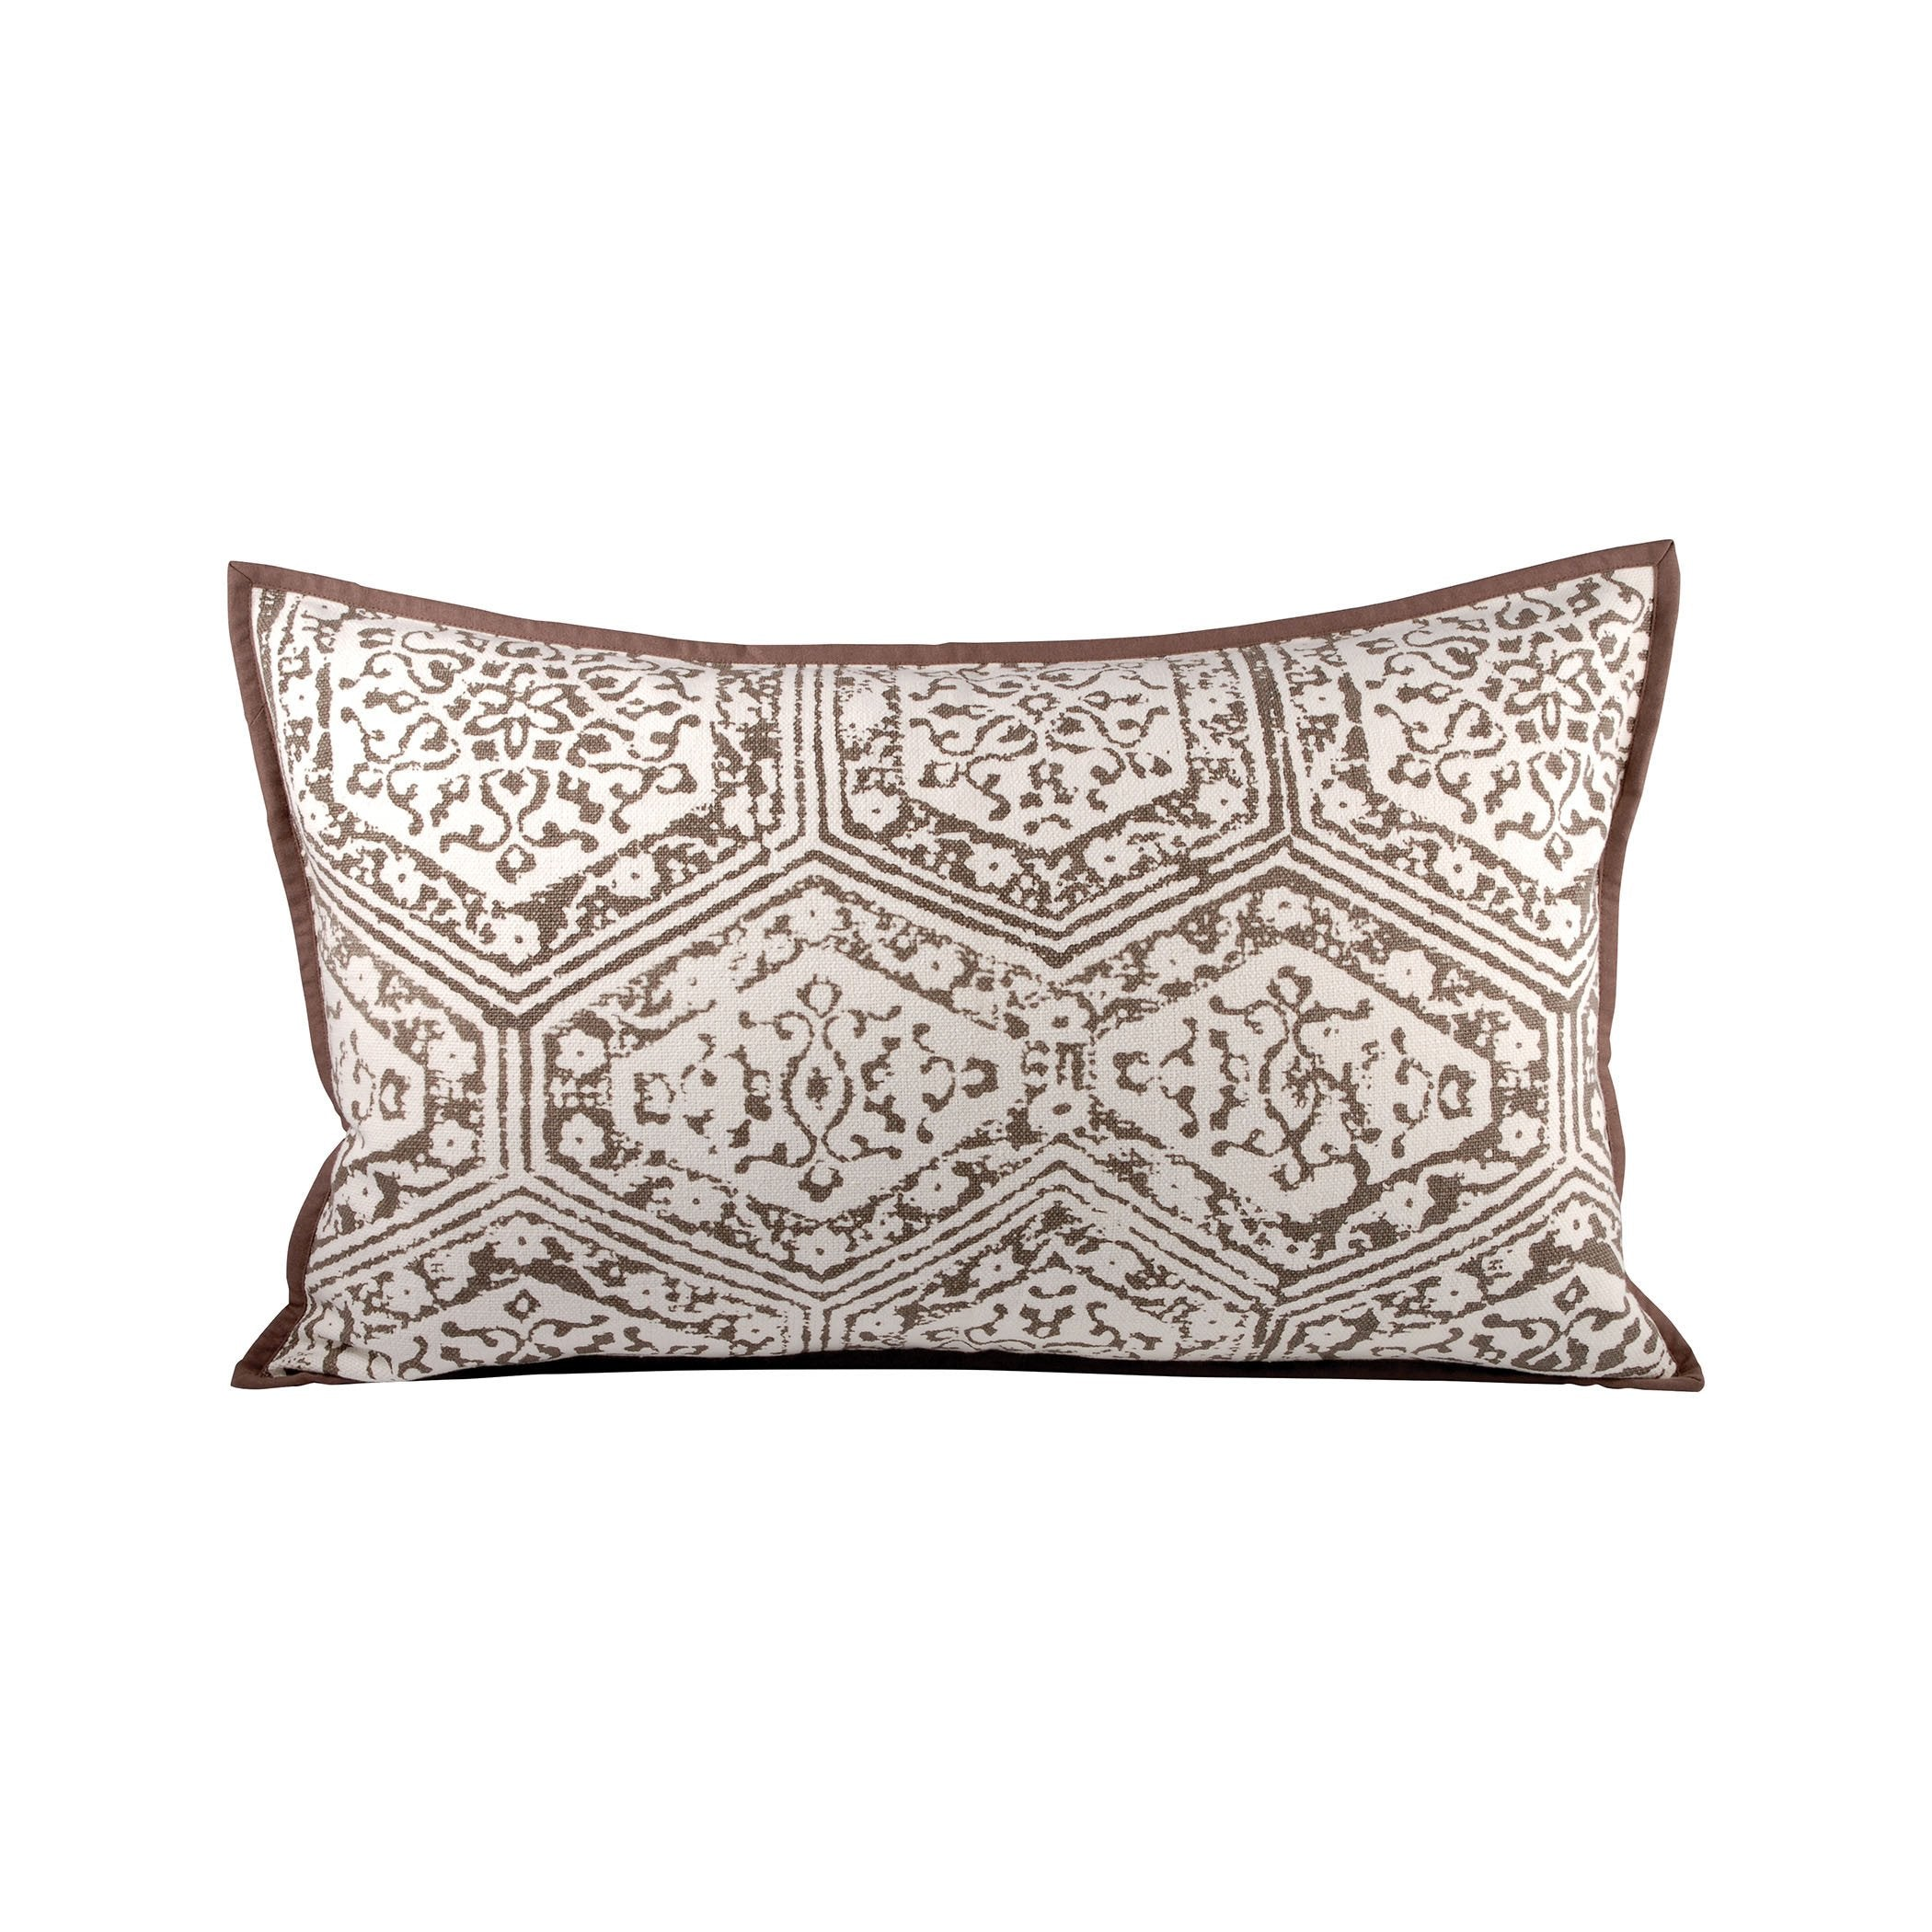 Pomeroy POM-904394 Old World Collection Dark Earth,Crema Finish Pillow